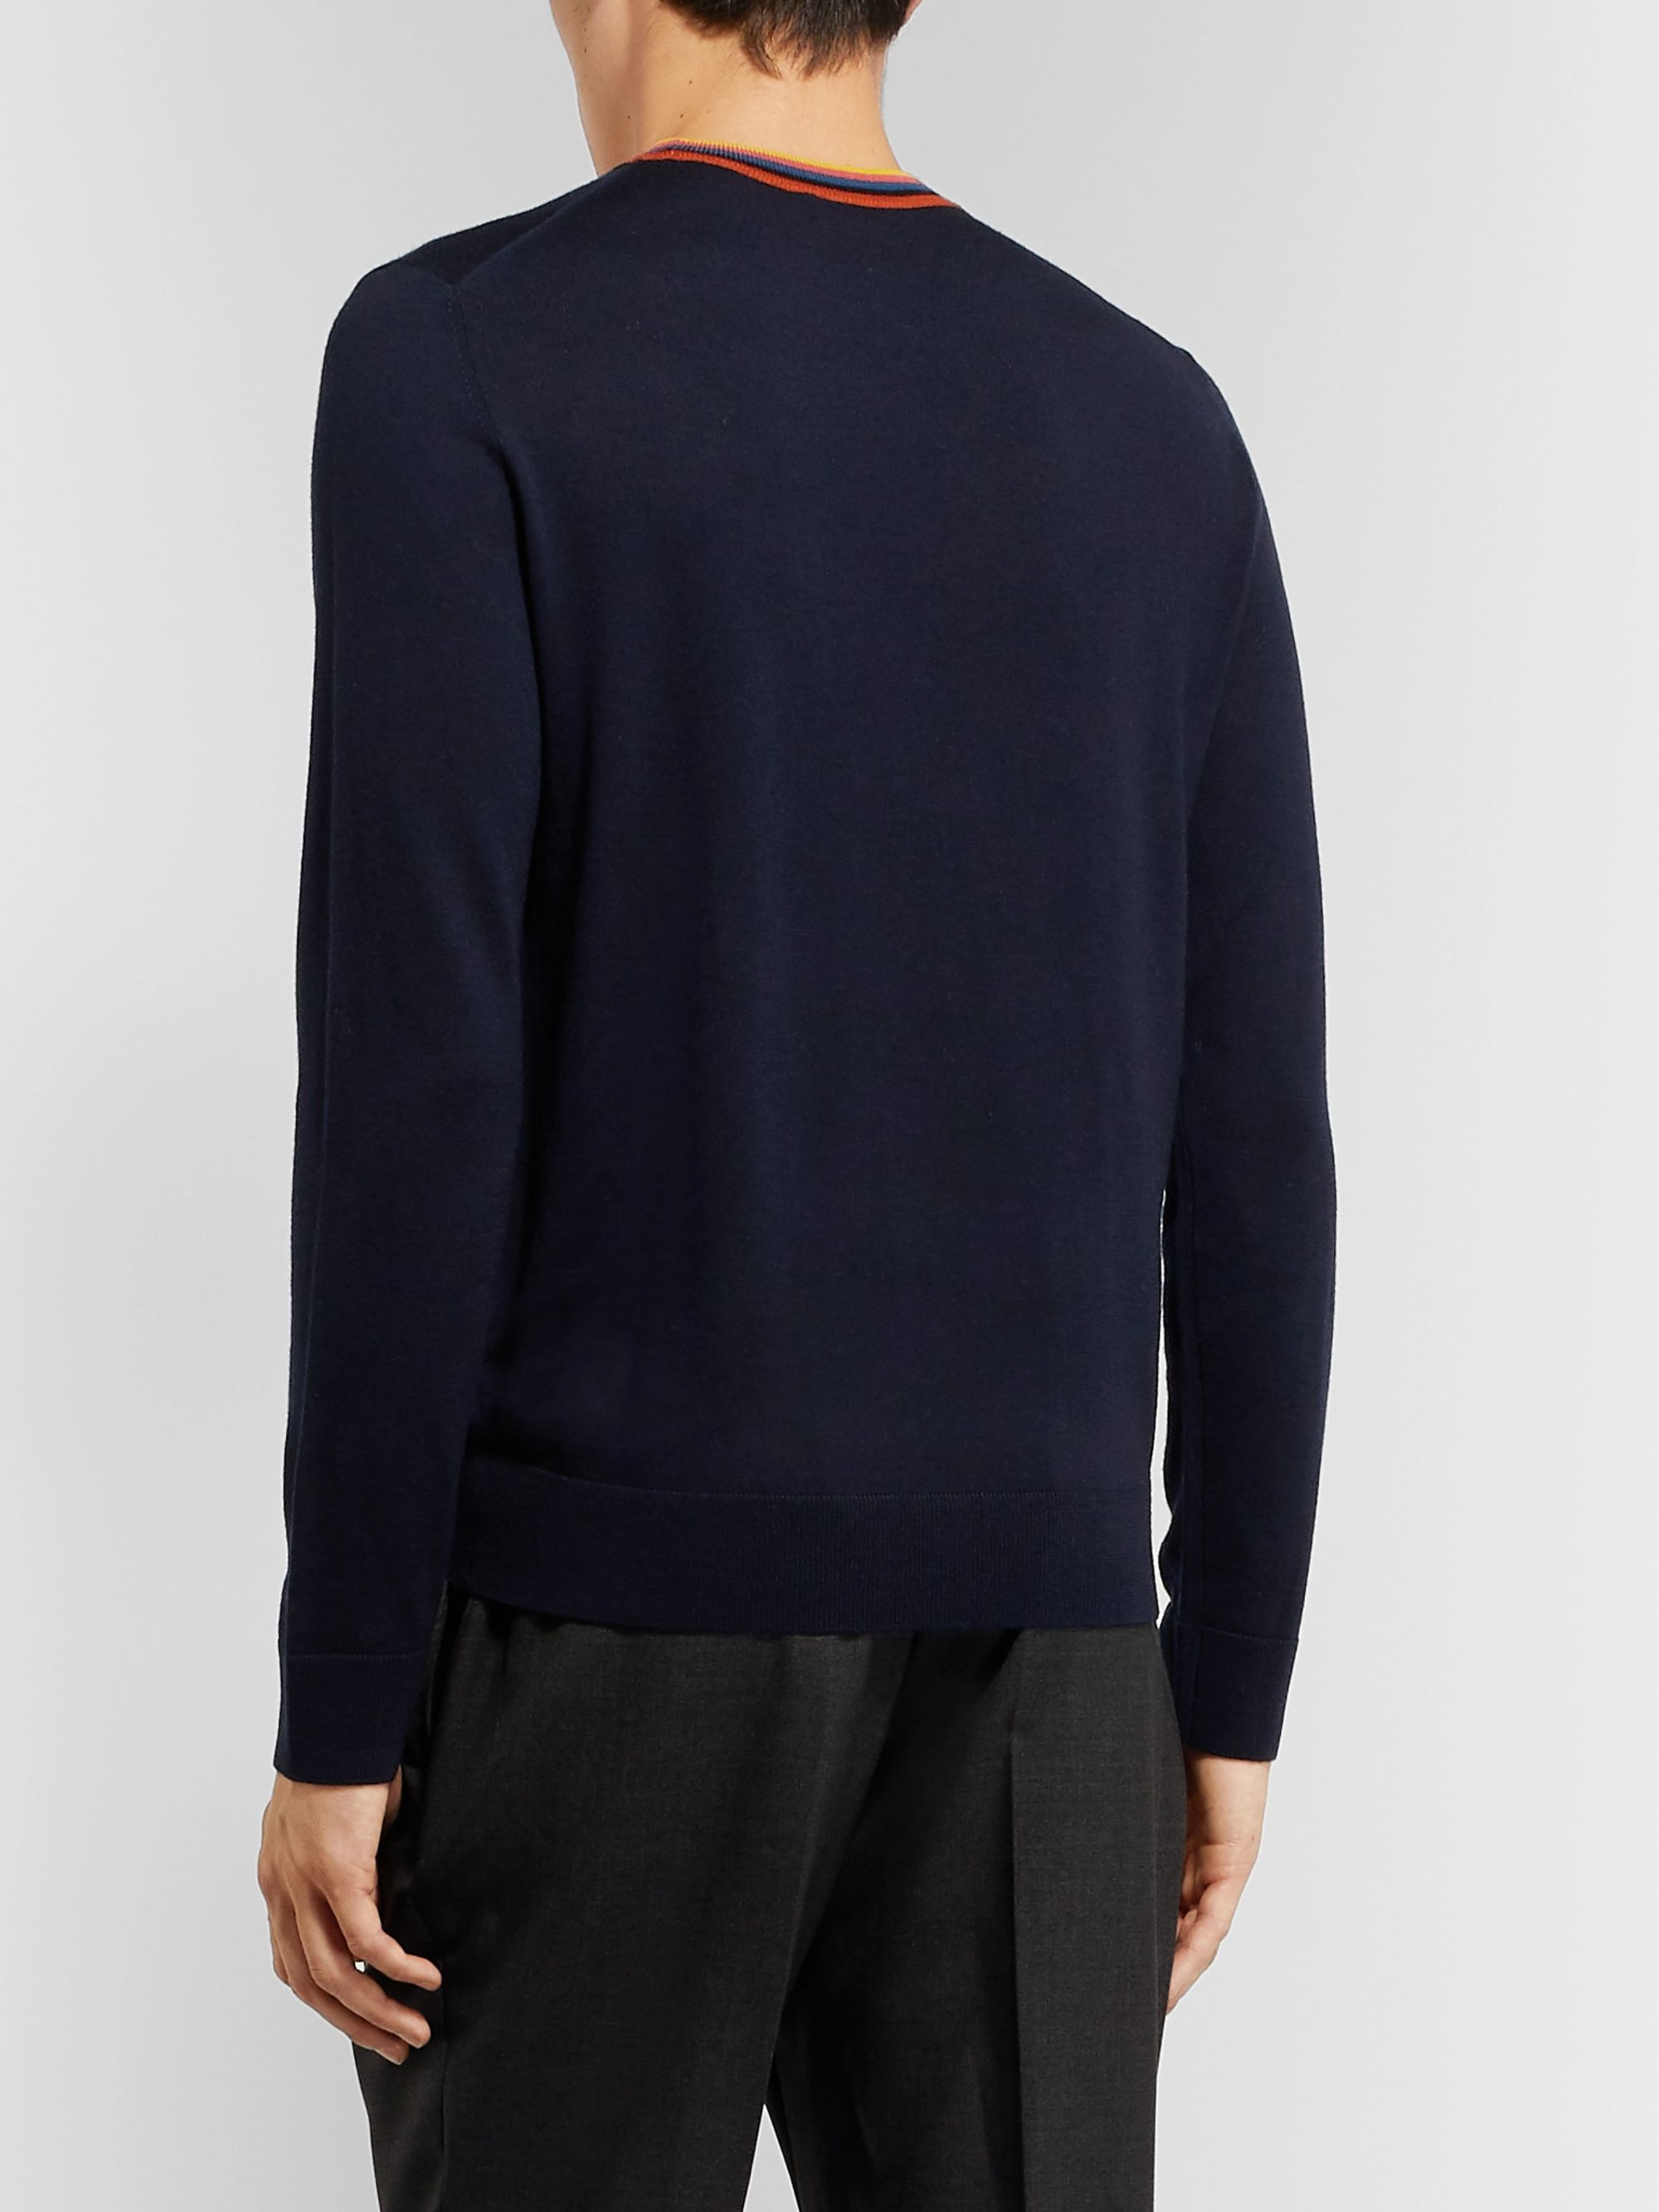 Paul Smith Slim-Fit Striped Merino Wool Sweater